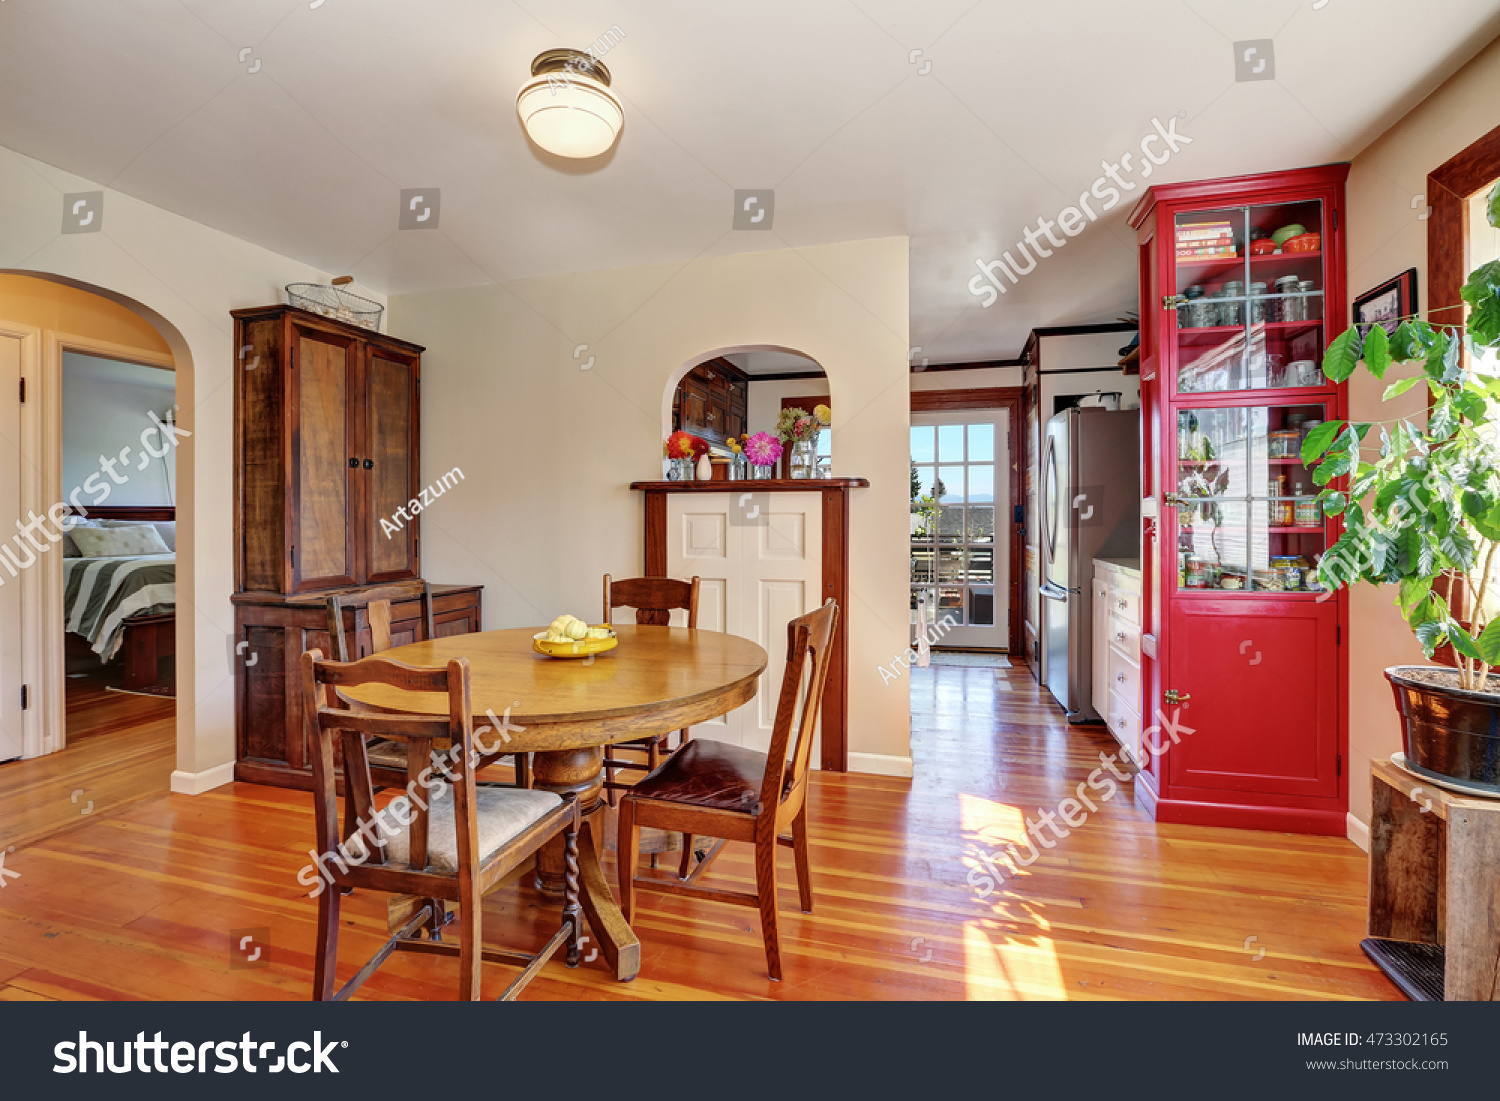 Dining Room With Antique Furniture, Northwest, USA